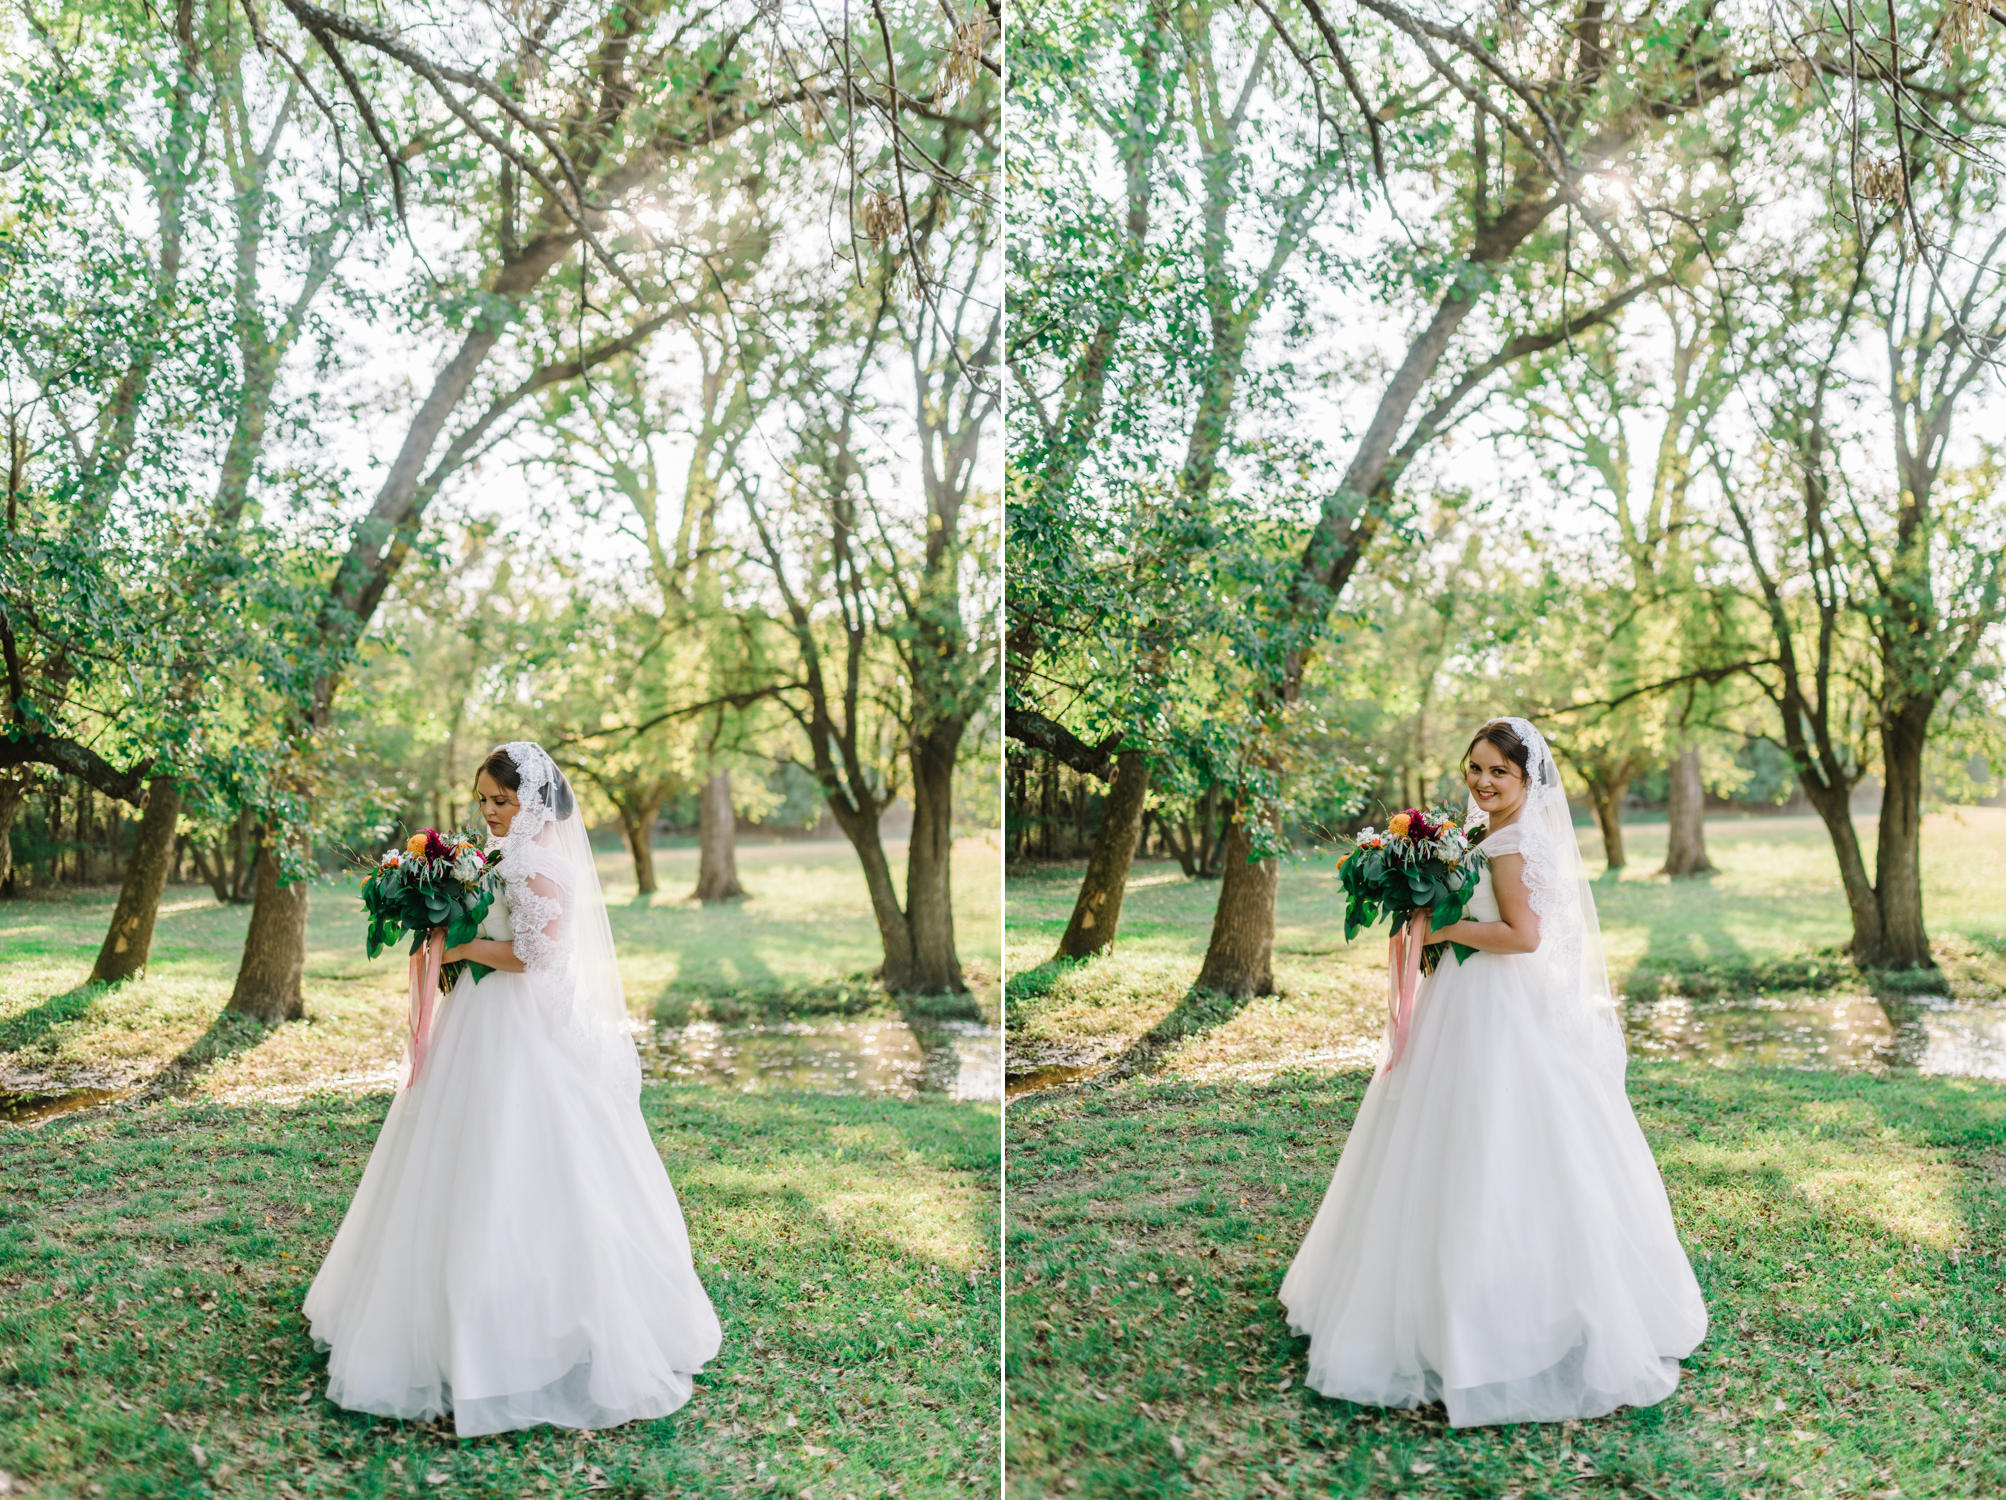 Wichita, Kansas Outdoor Wedding-Neal Dieker-Pinecrest Country Place-Wichita, Kansas Wedding Photographer-190.jpg